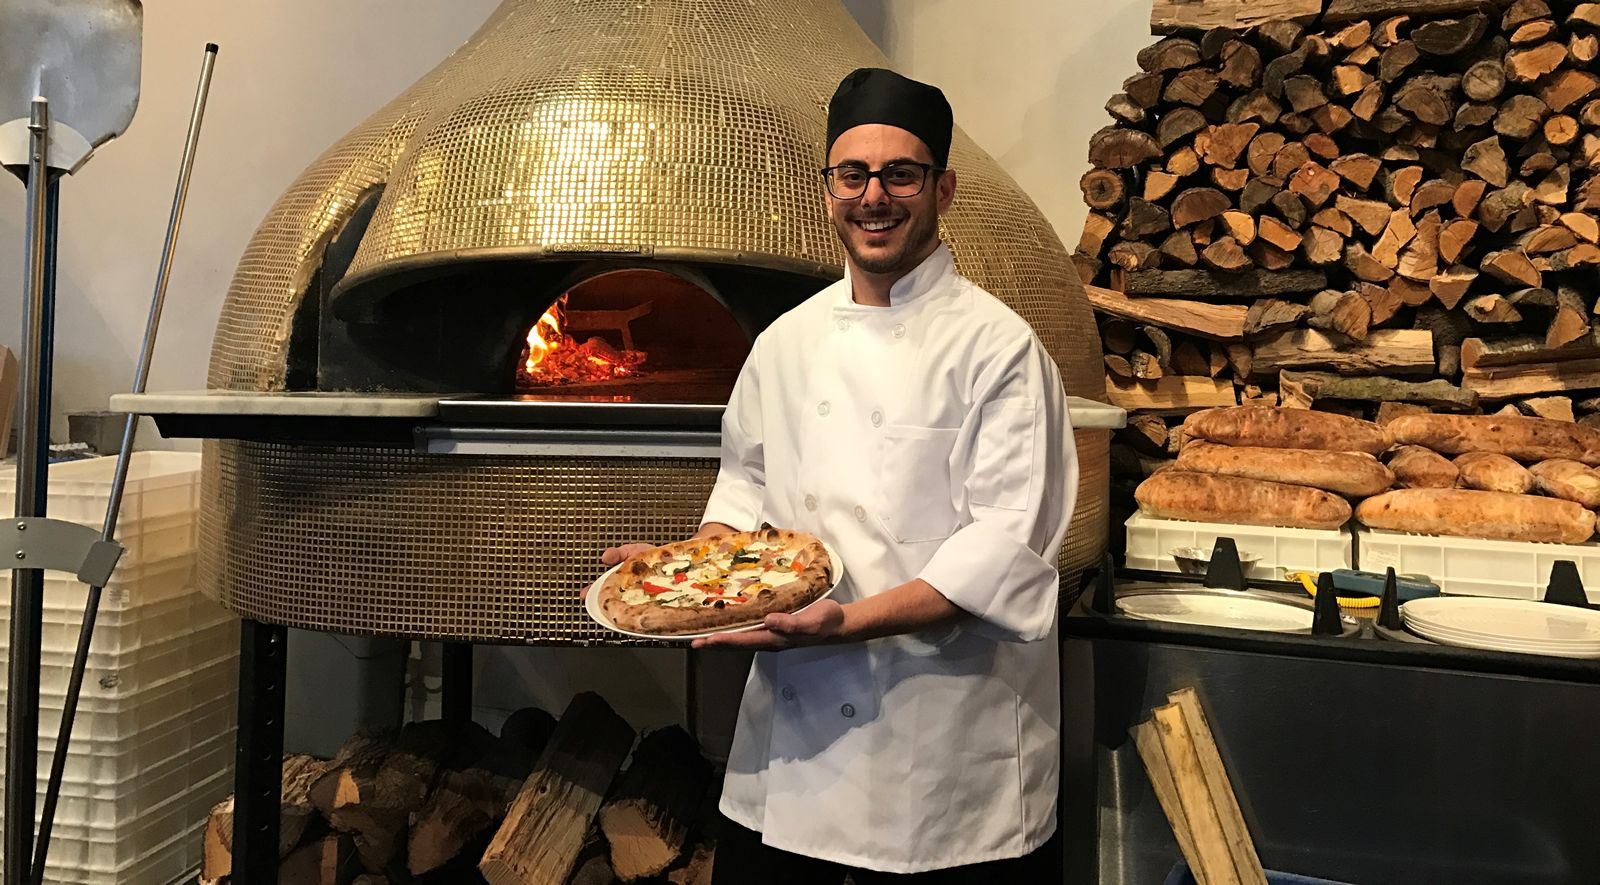 Goliath Consulting Group Announces Pizza Partnership with Certified International Pizzaiolo Alessio Lacco